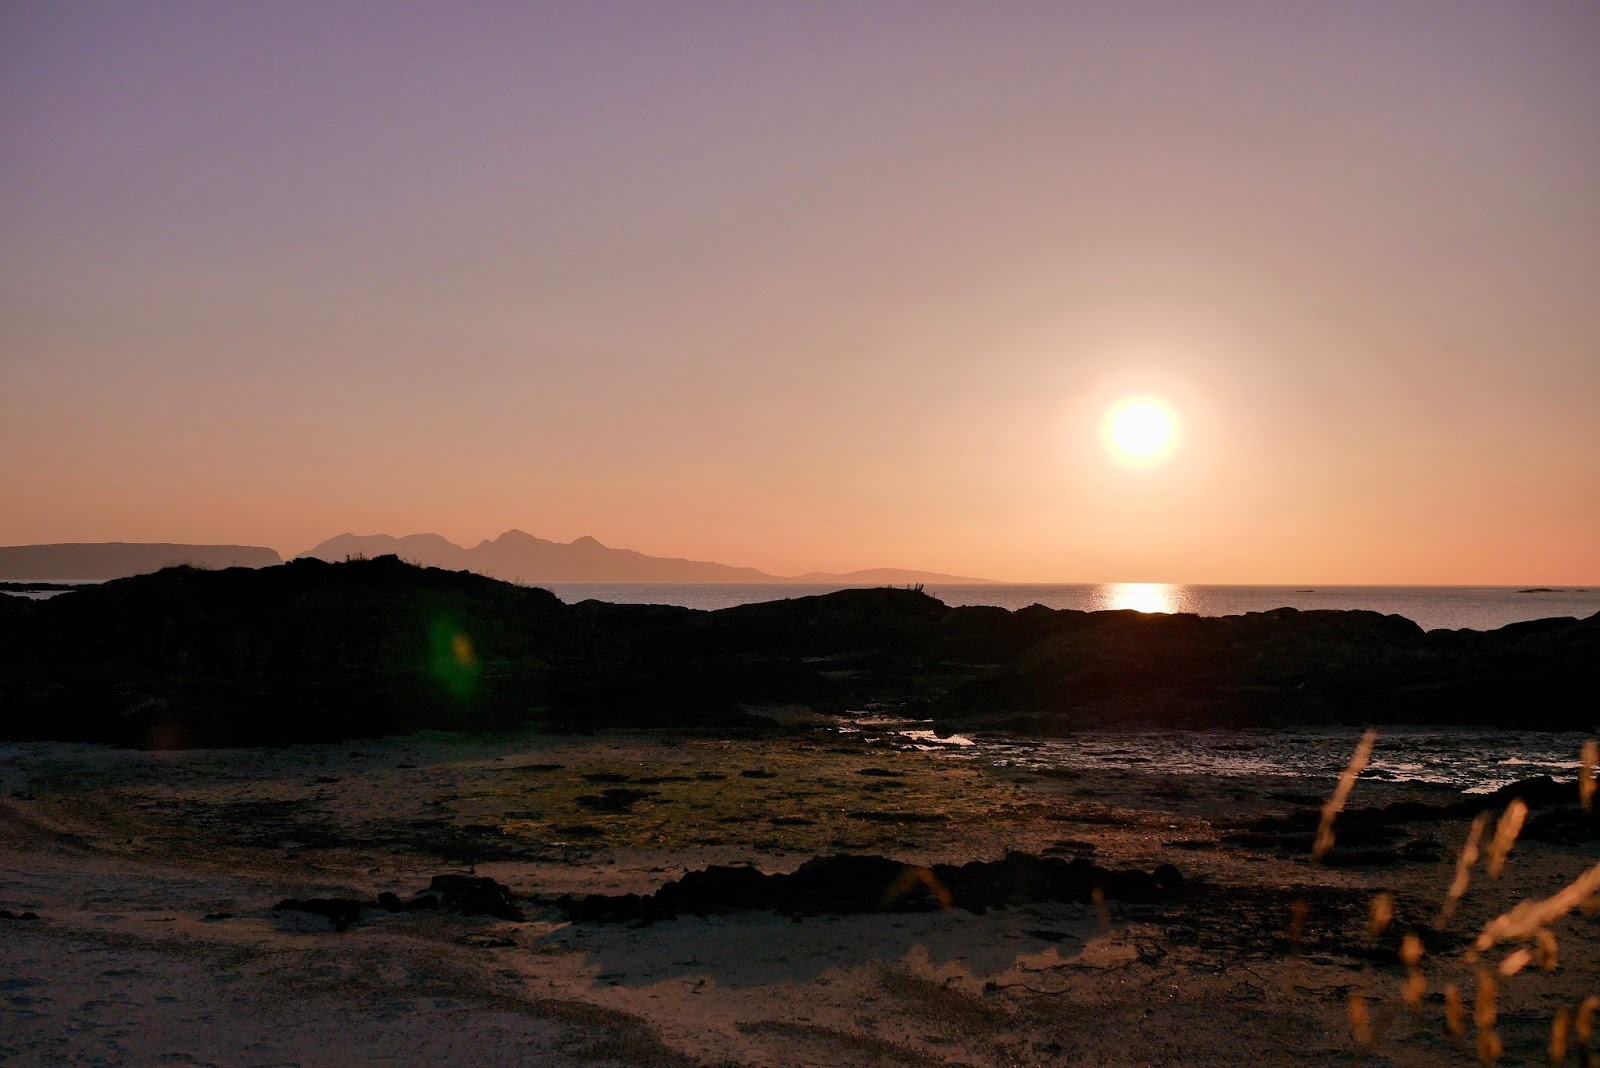 Incredible sunset views of the sky glowing orange and red accross the west in Arisaig, www.CalMcTravels.com